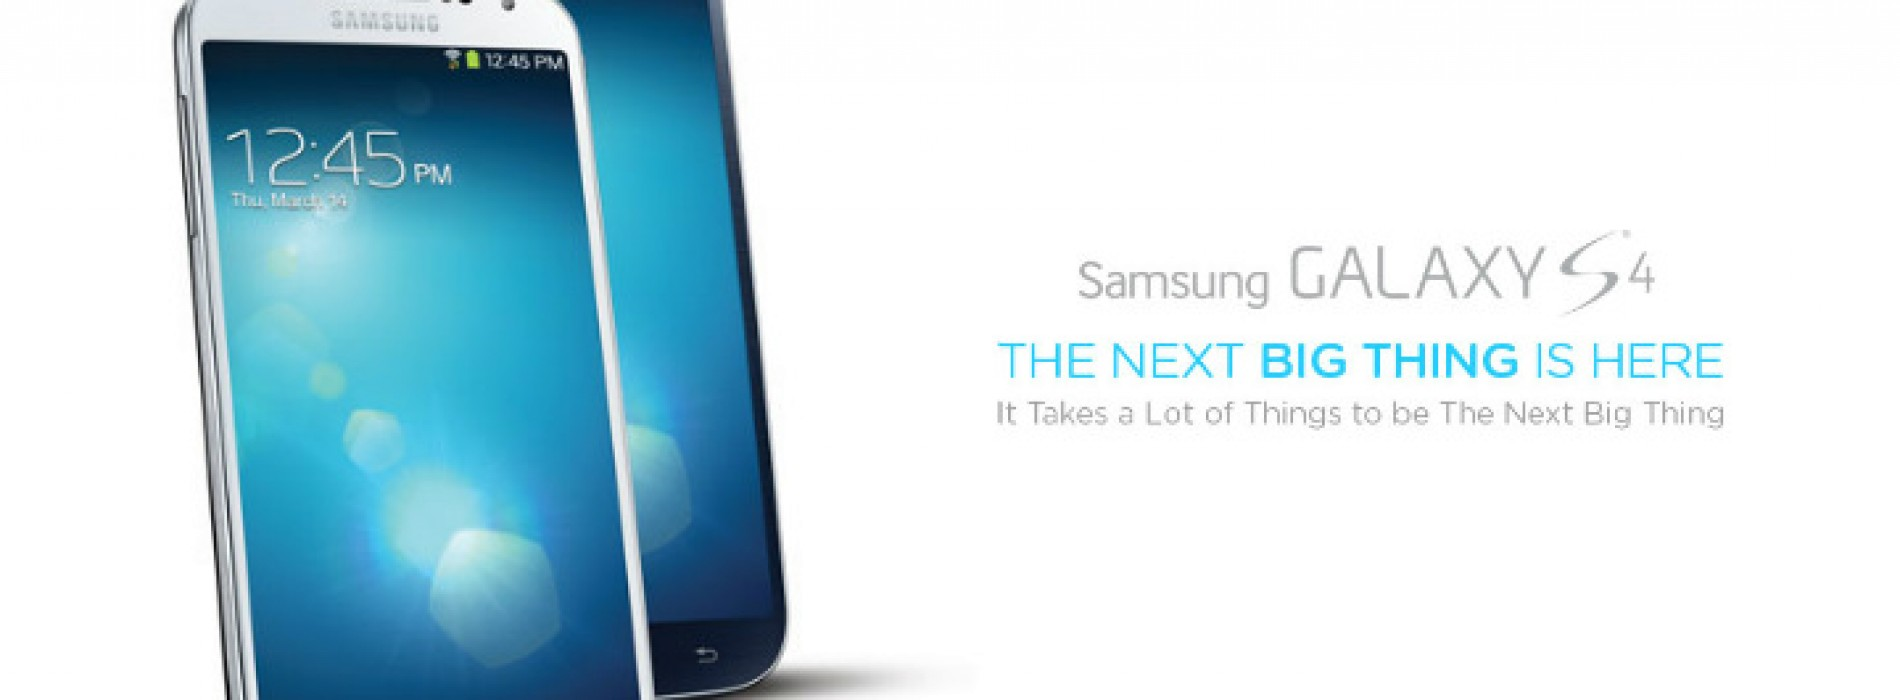 C Spire Wireless now offering Samsung Galaxy S4